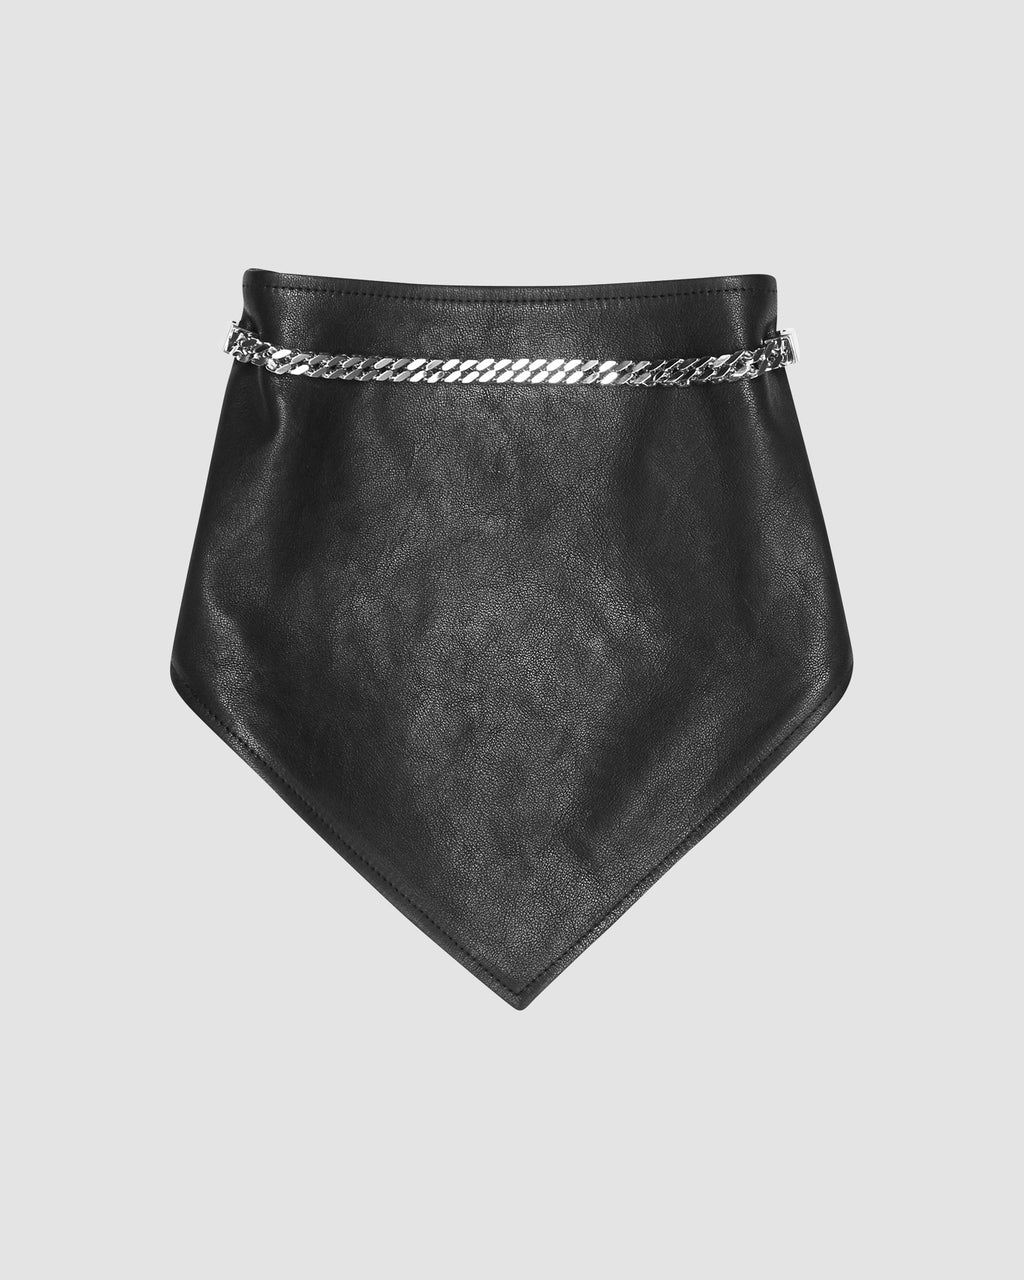 LEATHER BANDANA WITH CHAIN MADE TO ORDER